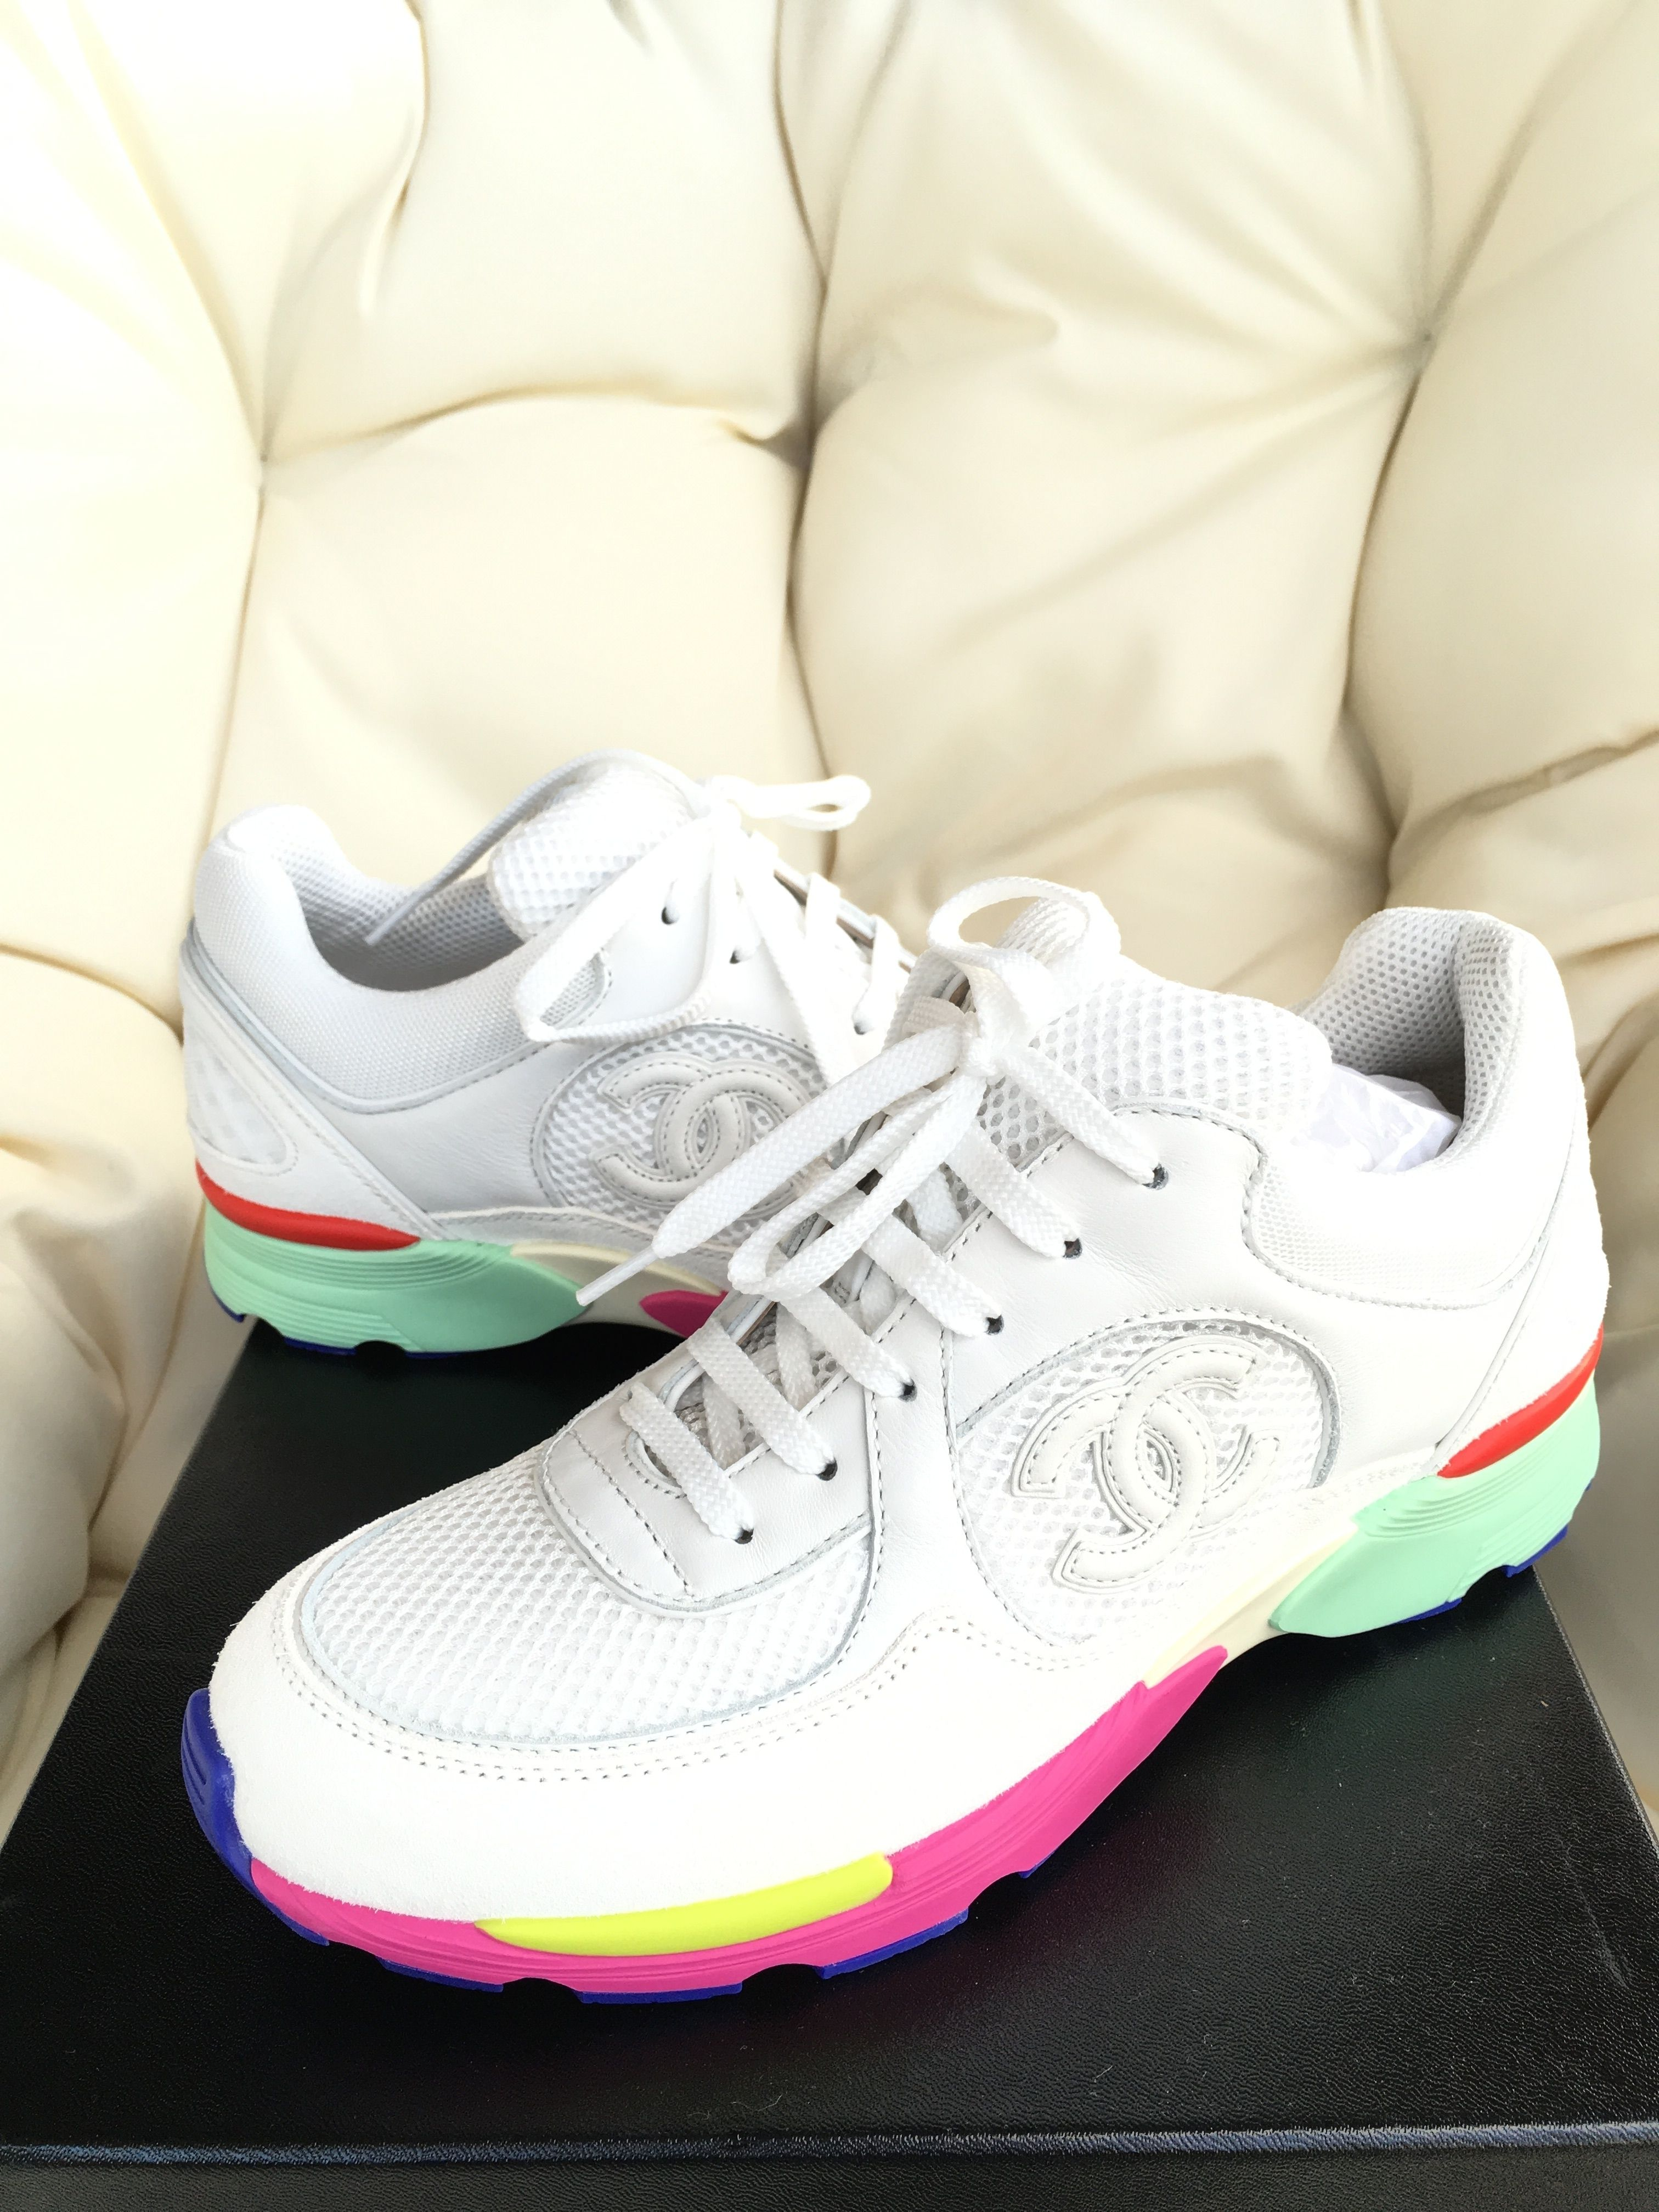 1491d613fac Chanel 2015 Cc Logo Suede Sneakers Tennis Trainers Rainbow Multi 37 White  Athletic Shoes. Get the must-have athletic shoes of this season!